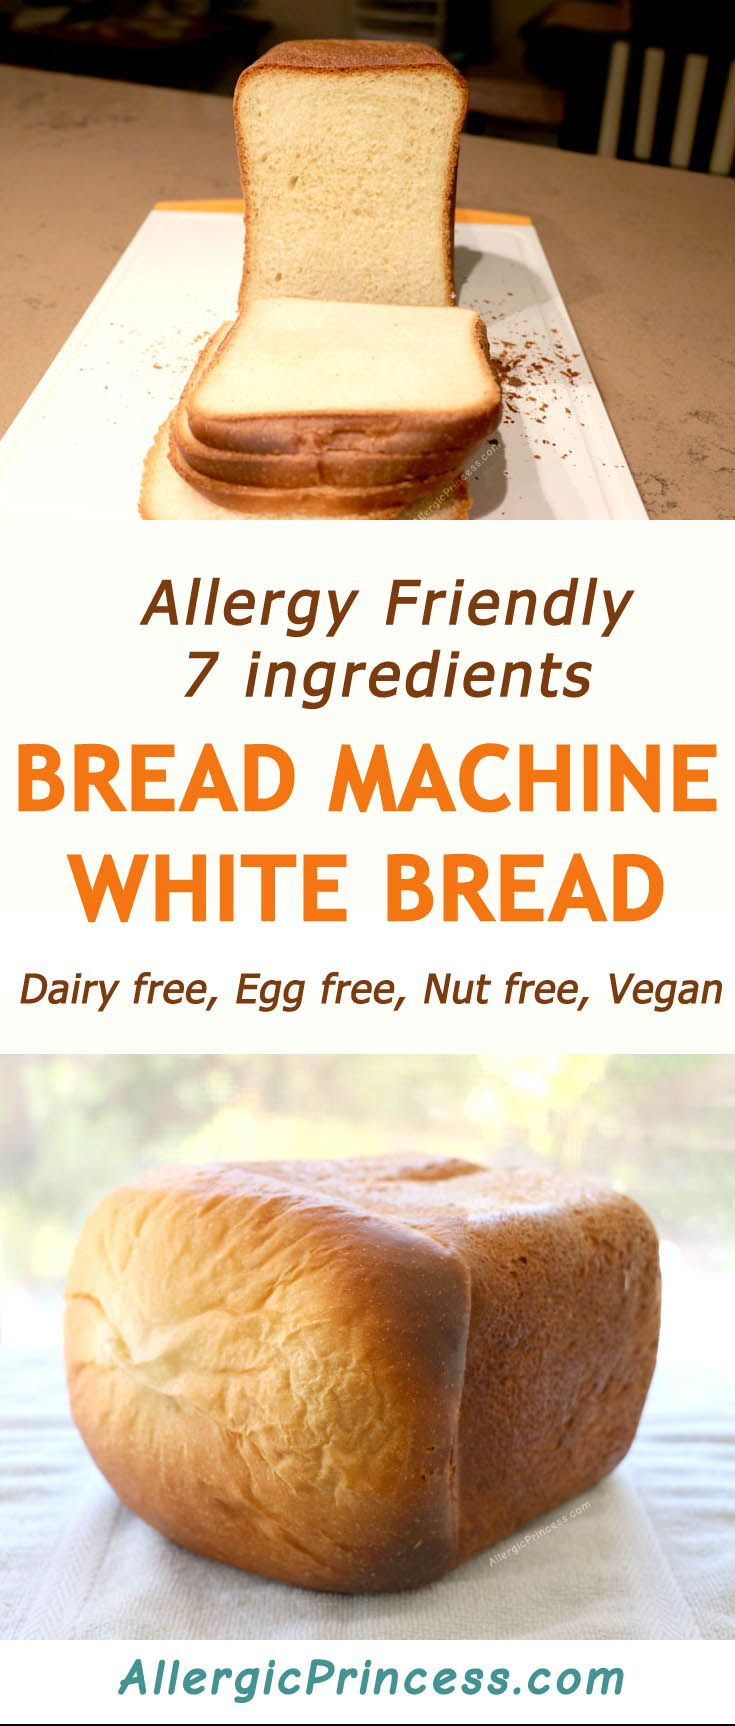 Classic dairy free bread machine white bread is easy to make by just adding 7 ingredients into the bread machine and switching it on. EGG FREE, DAIRY FREE, NUT FREE, VEGAN